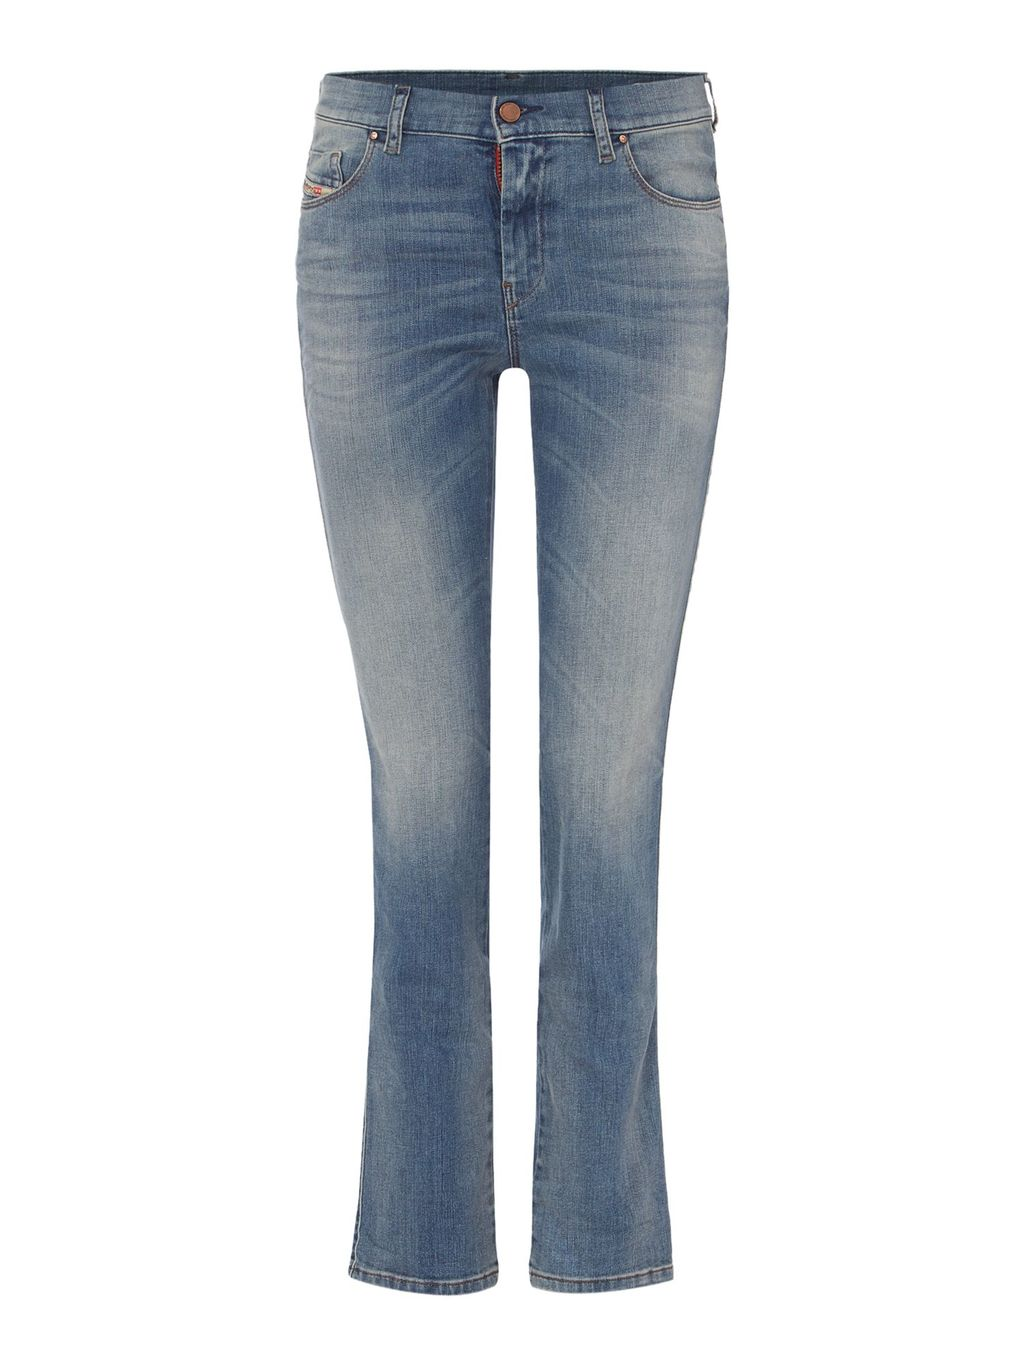 Sandy 0675 D Straight Jeans Leg 30, Blue - style: straight leg; length: standard; pattern: plain; pocket detail: traditional 5 pocket; waist: mid/regular rise; predominant colour: denim; occasions: casual; fibres: cotton - stretch; jeans detail: shading down centre of thigh; texture group: denim; pattern type: fabric; season: s/s 2016; wardrobe: basic